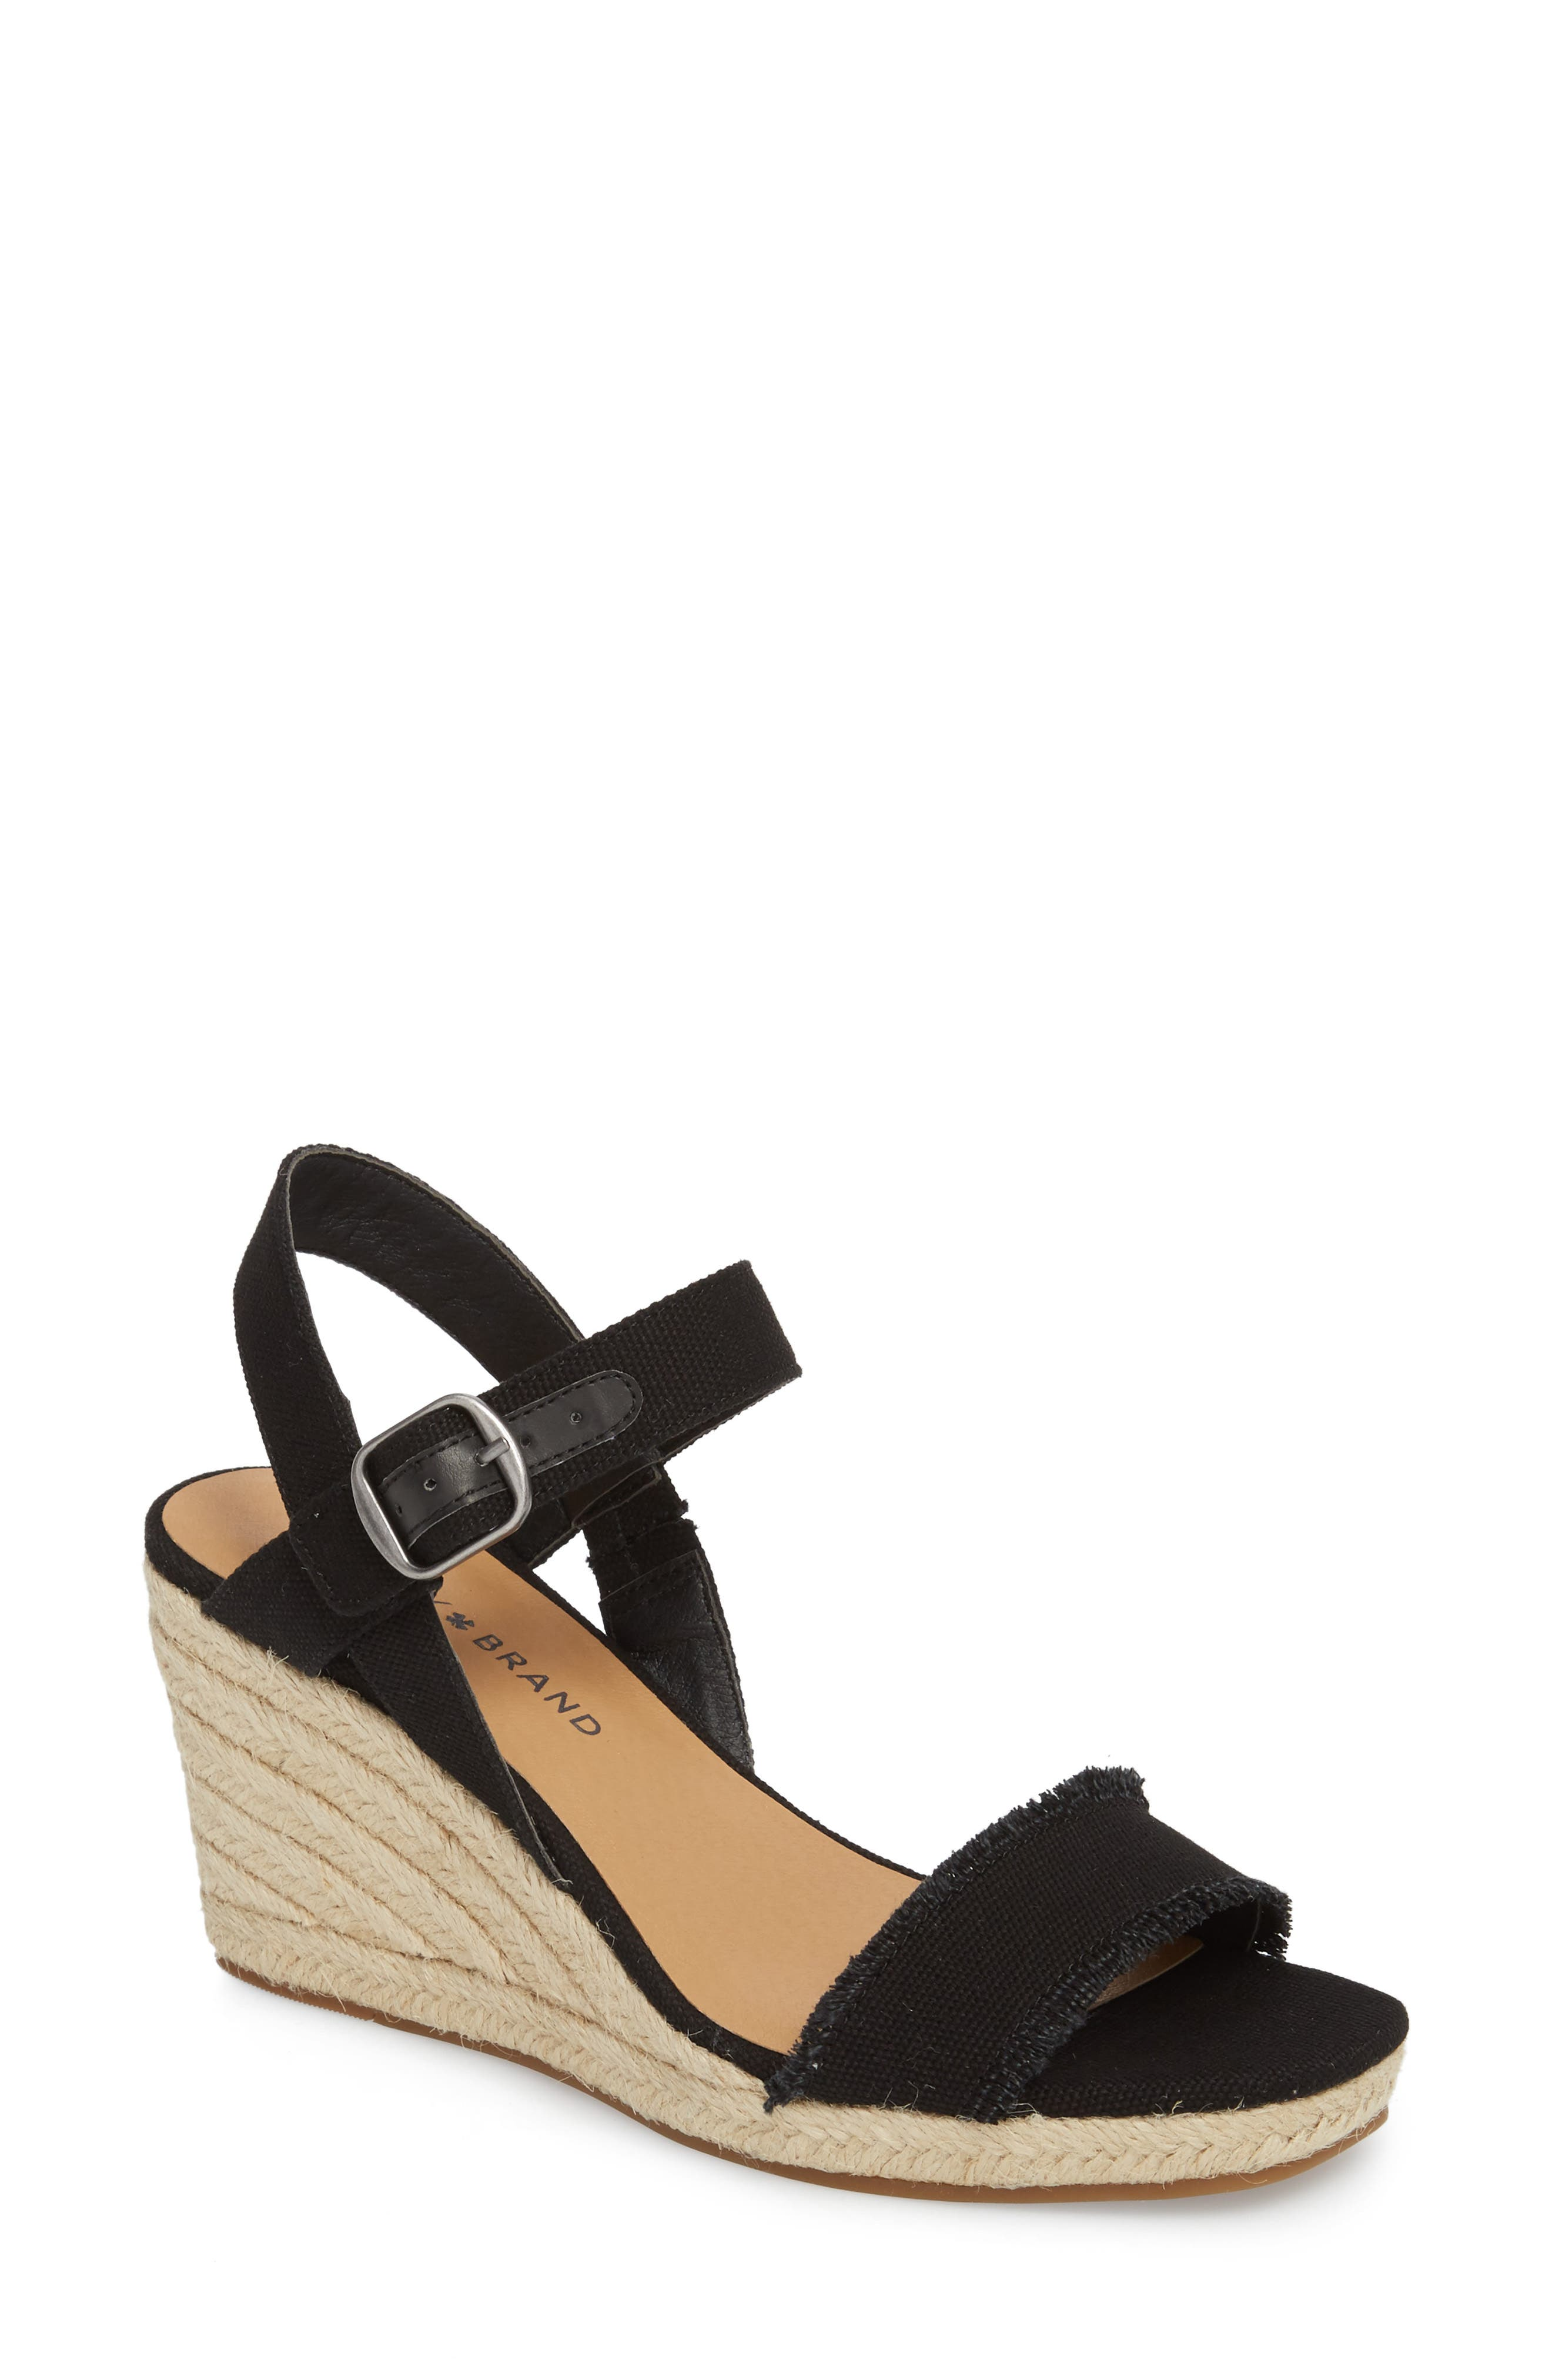 Marceline Squared Toe Wedge Sandal,                             Main thumbnail 1, color,                             001